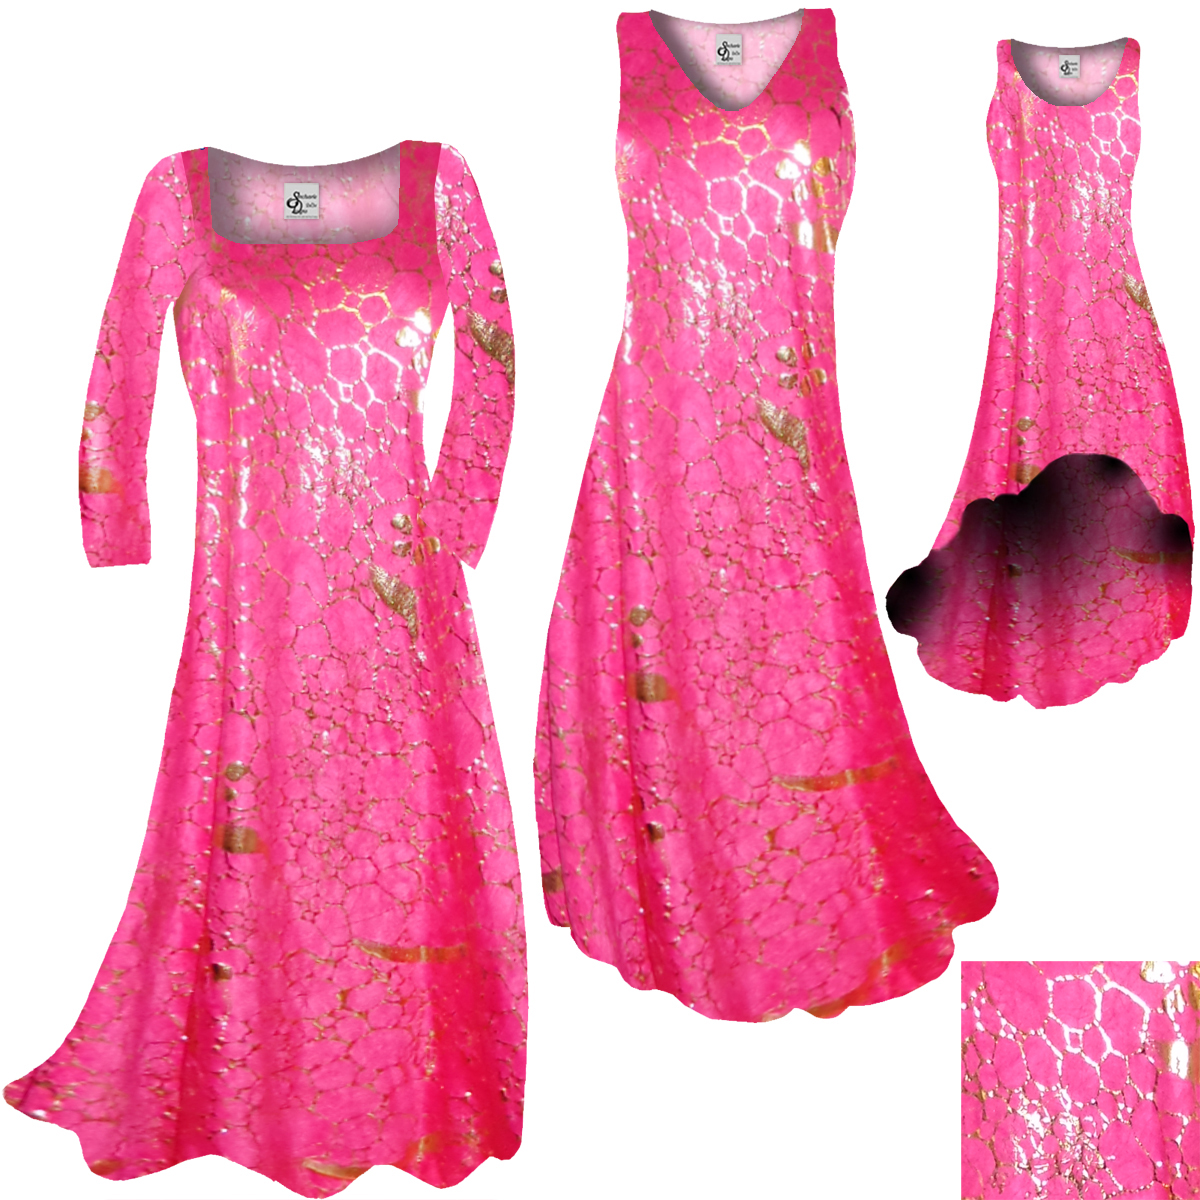 Sold Out Hot Pink Gold Metallic Shiny Slinky Print Plus Size